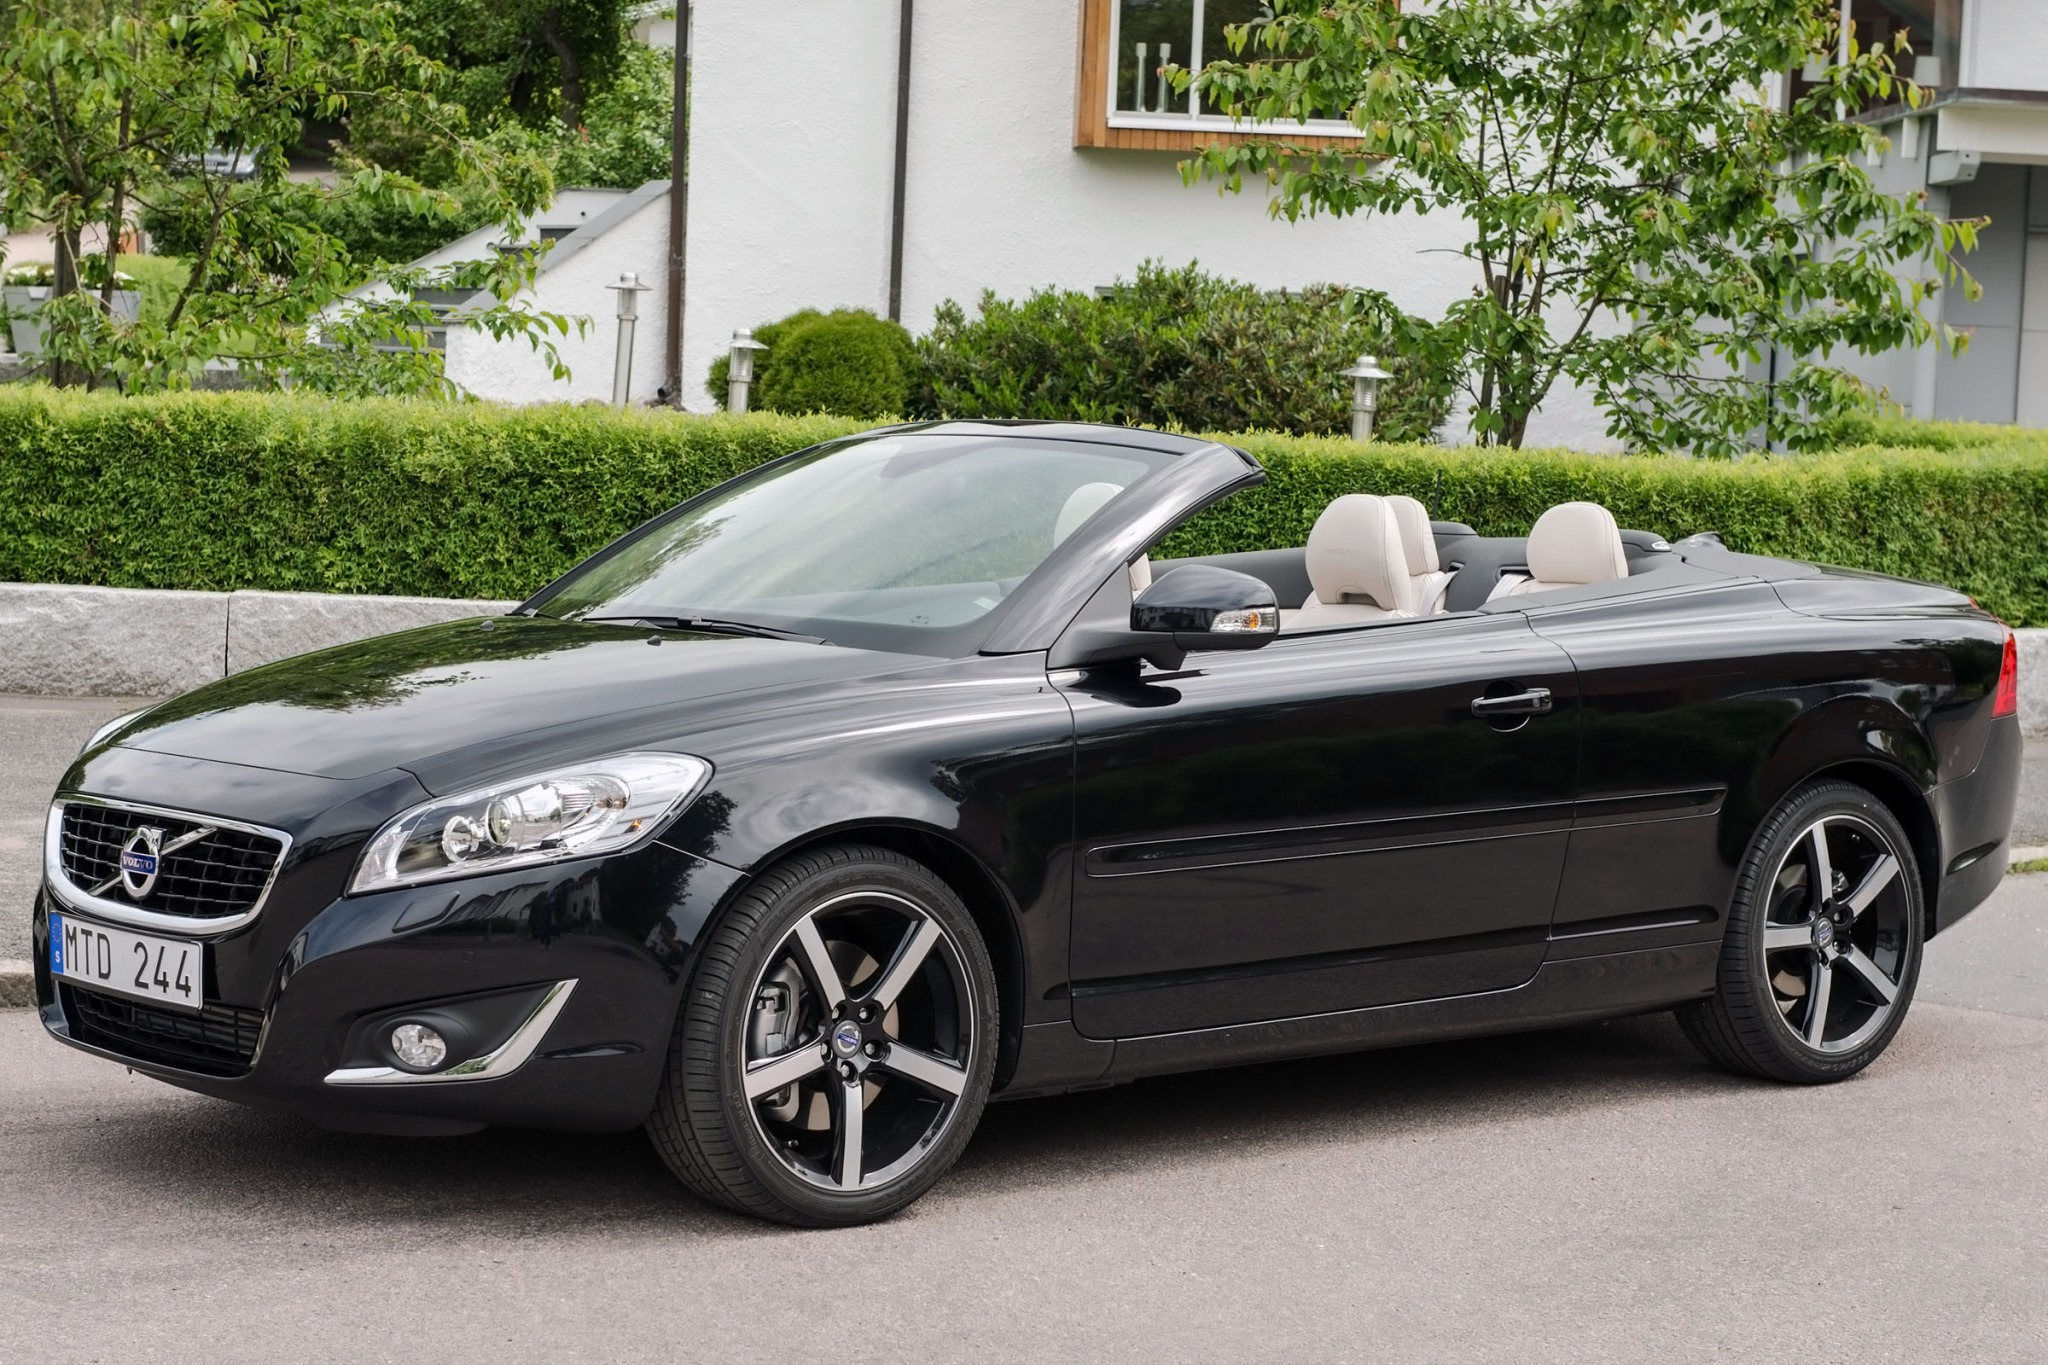 convertible review of expert used volvo vehicle